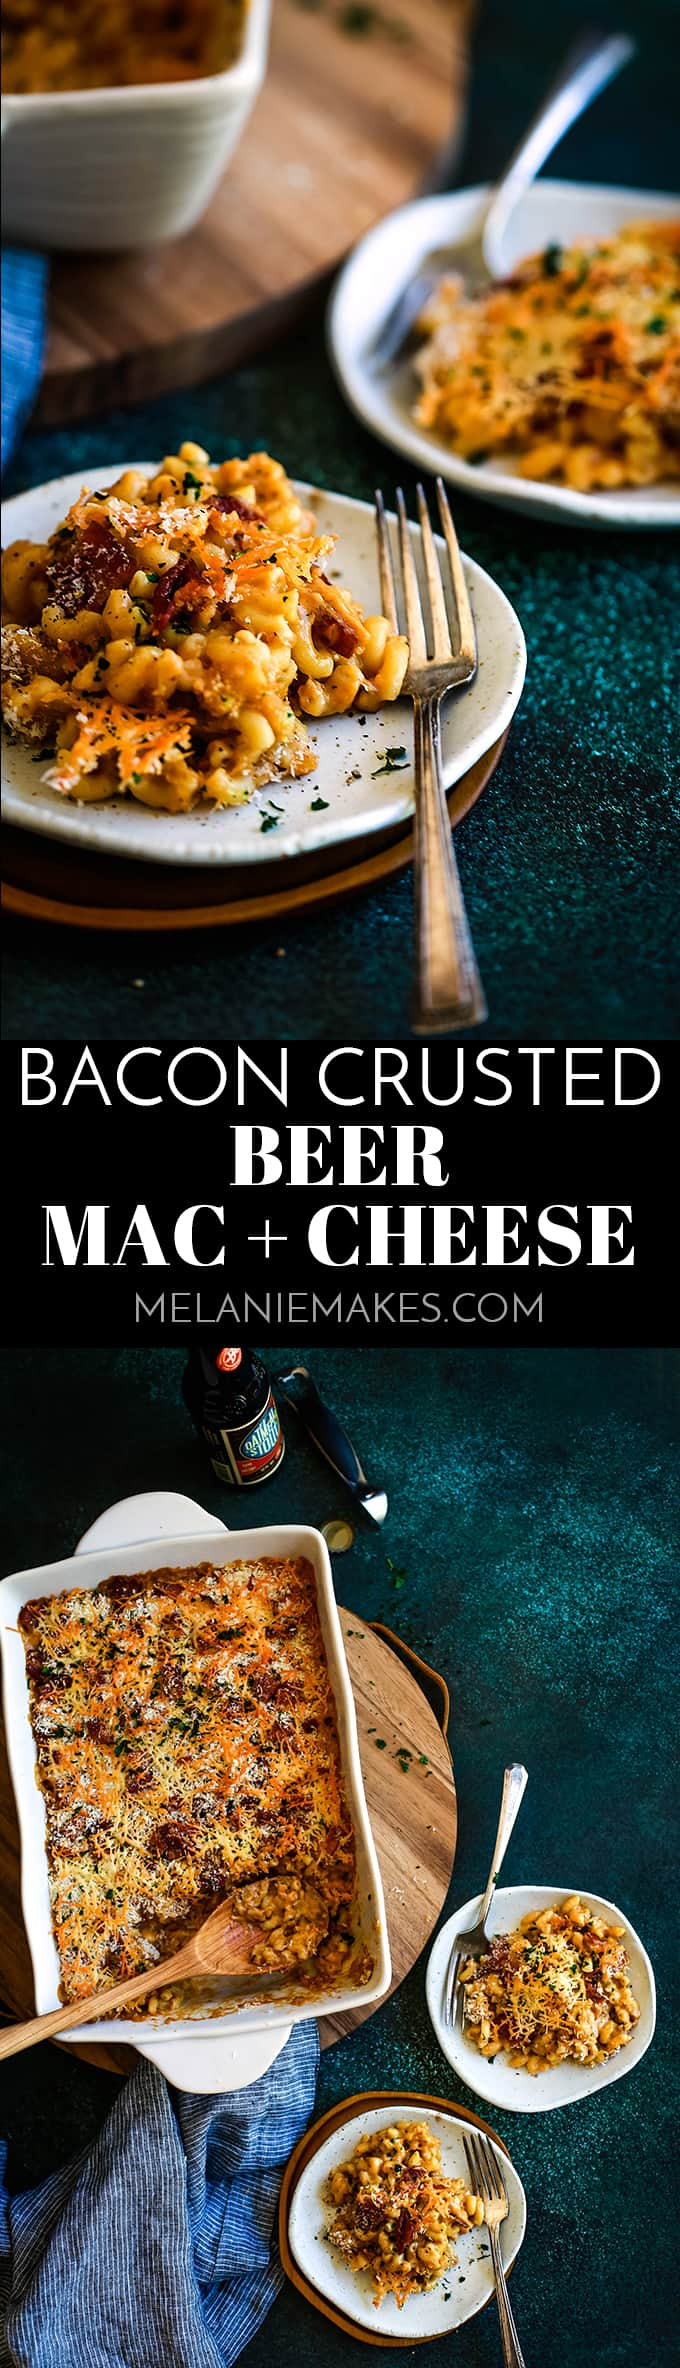 This Bacon Crusted Beer Mac and Cheese is a double cheesy pasta bathed in a beer sauce and topped with a cheese and bacon crust.  Total comfort food! #bacon #beer #macaroni #pasta #cheese #comfortfood #easyrecipe #bacon